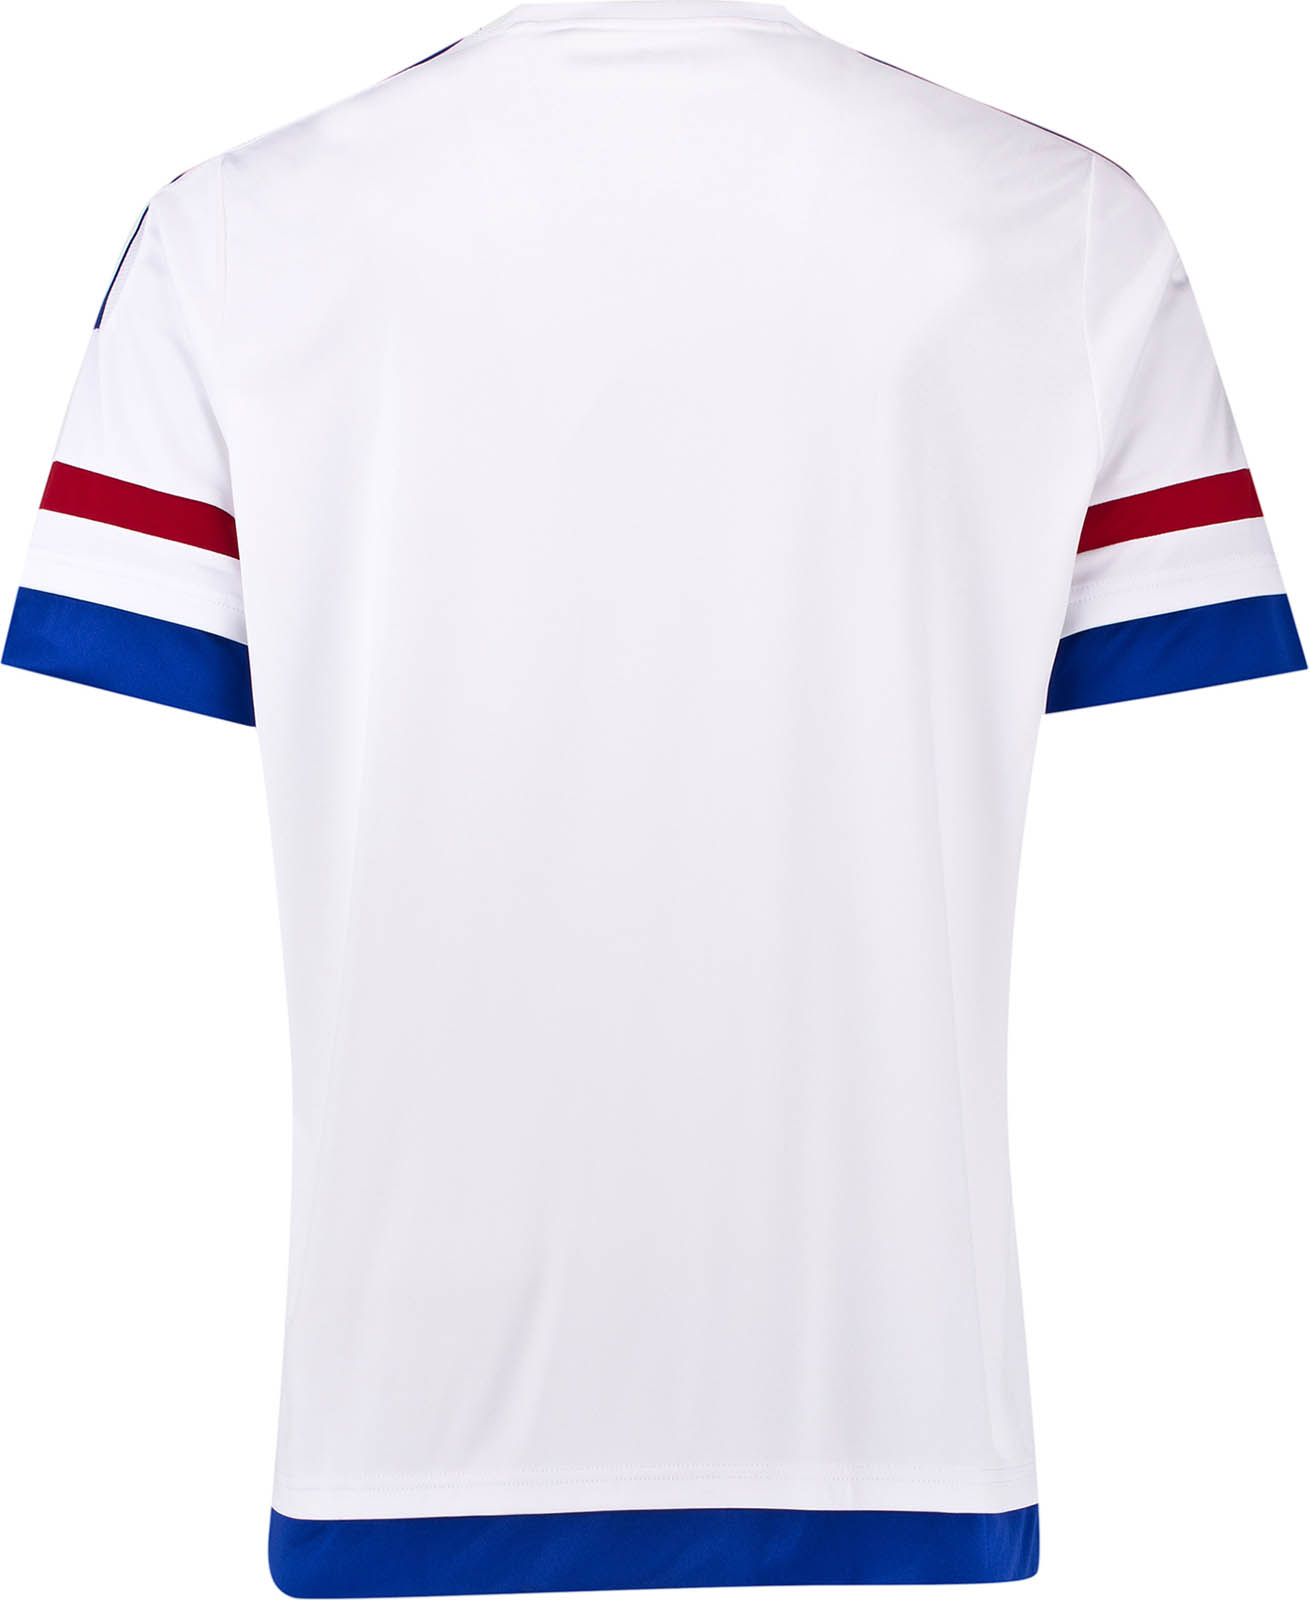 80f10c4e6ce The new white Adidas Chelsea 15-16 Away Kit has a modern kit design with a  simple white crew neck collar. The Yokohama sponsor logo on the Chelsea 2015 -2016 ...